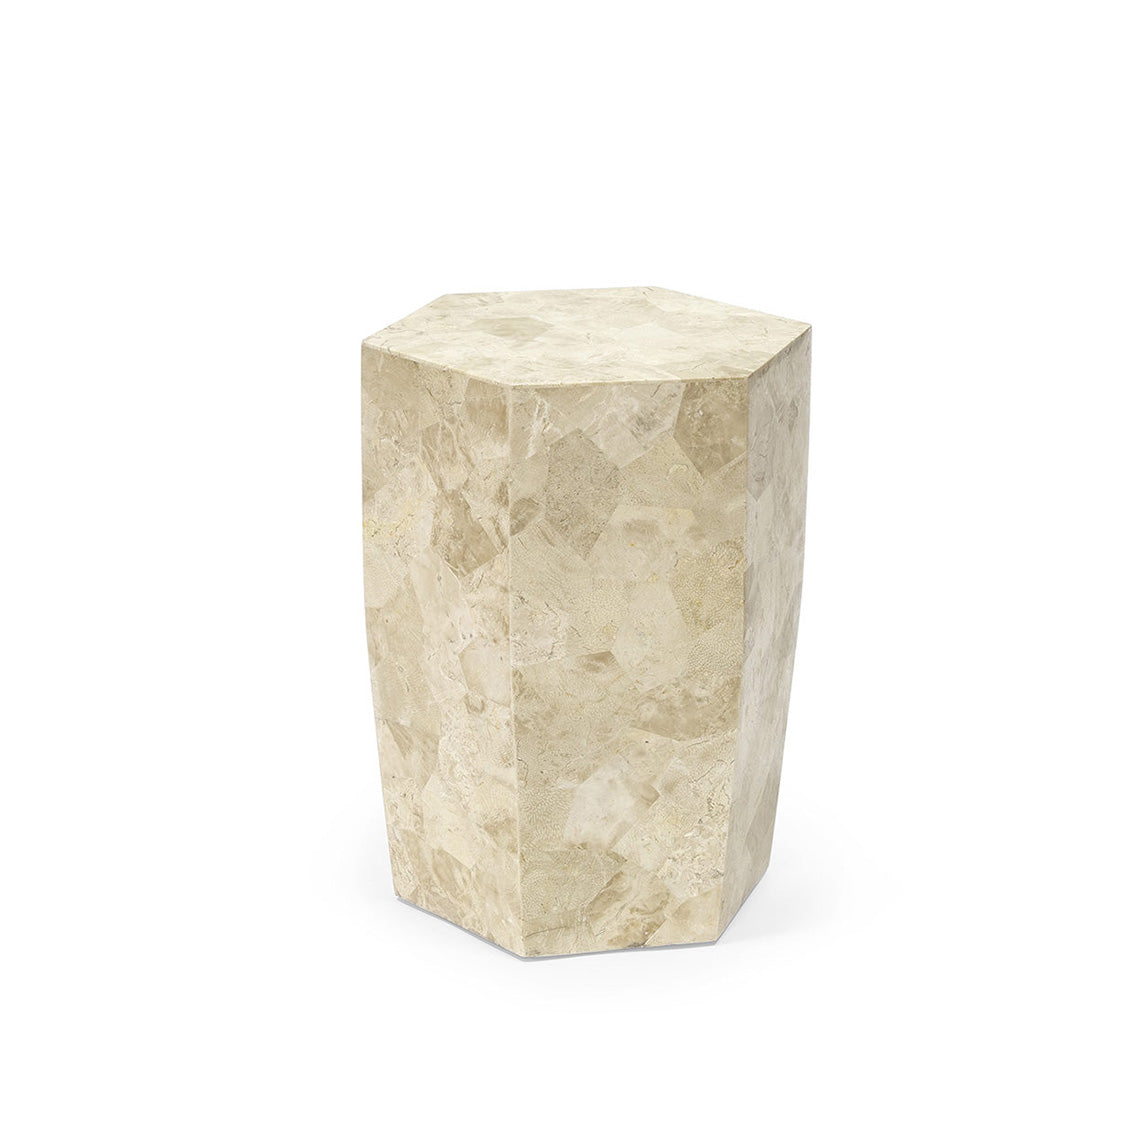 Otama Stone Stool/Side Table